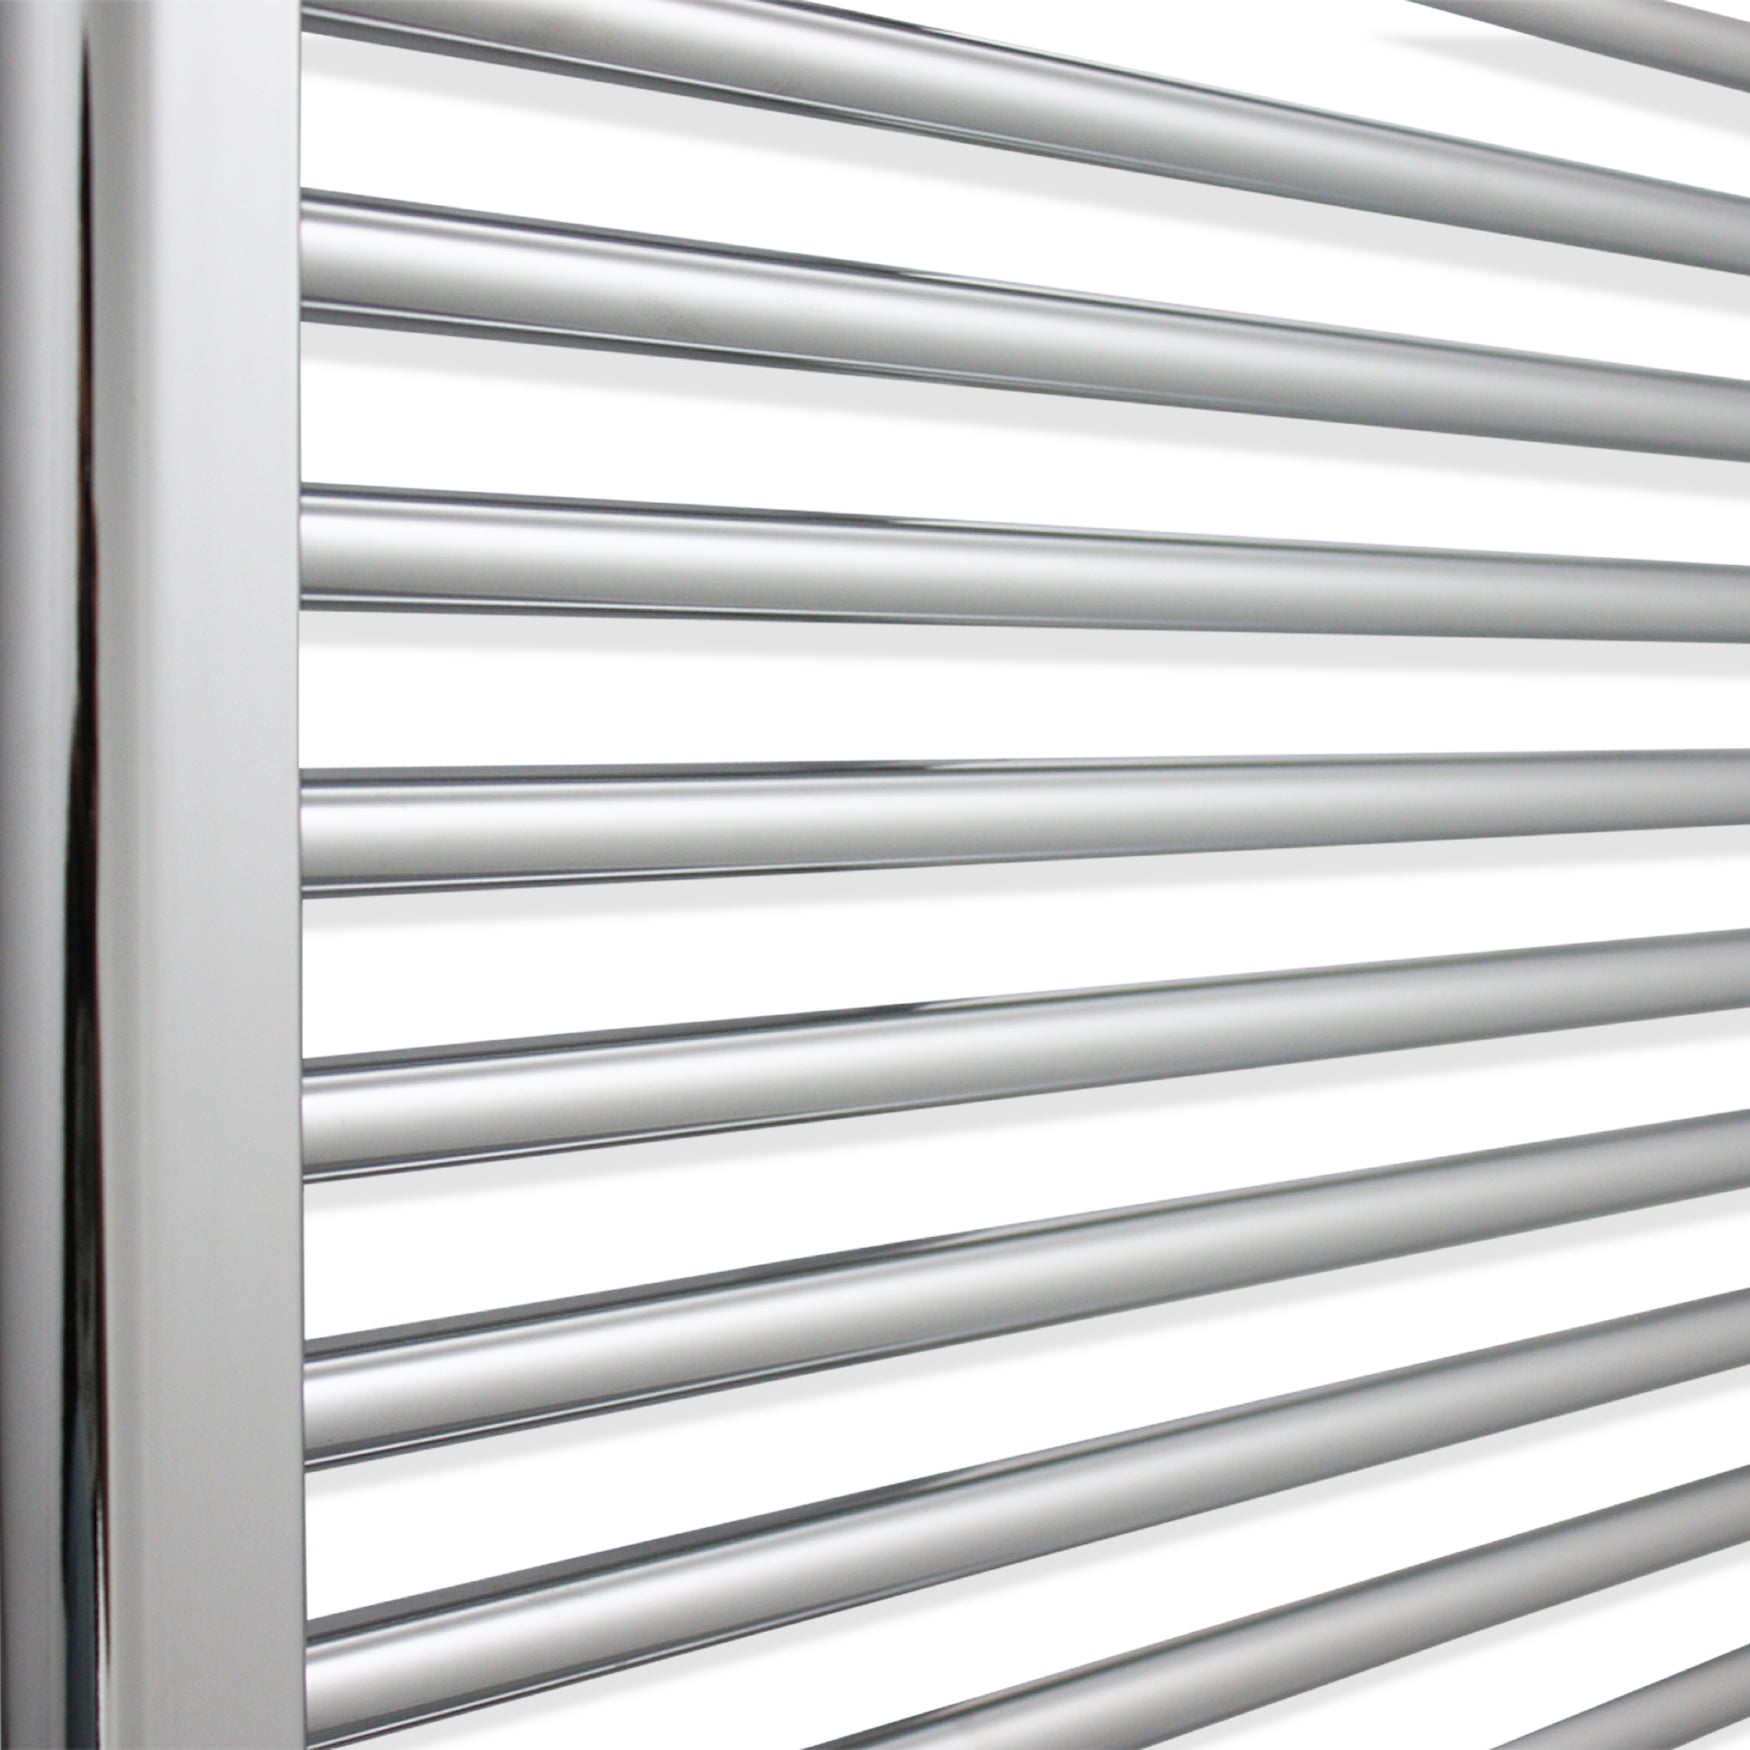 400mm Wide 1800mm High Flat Chrome Heated Towel Rail Radiator HTR